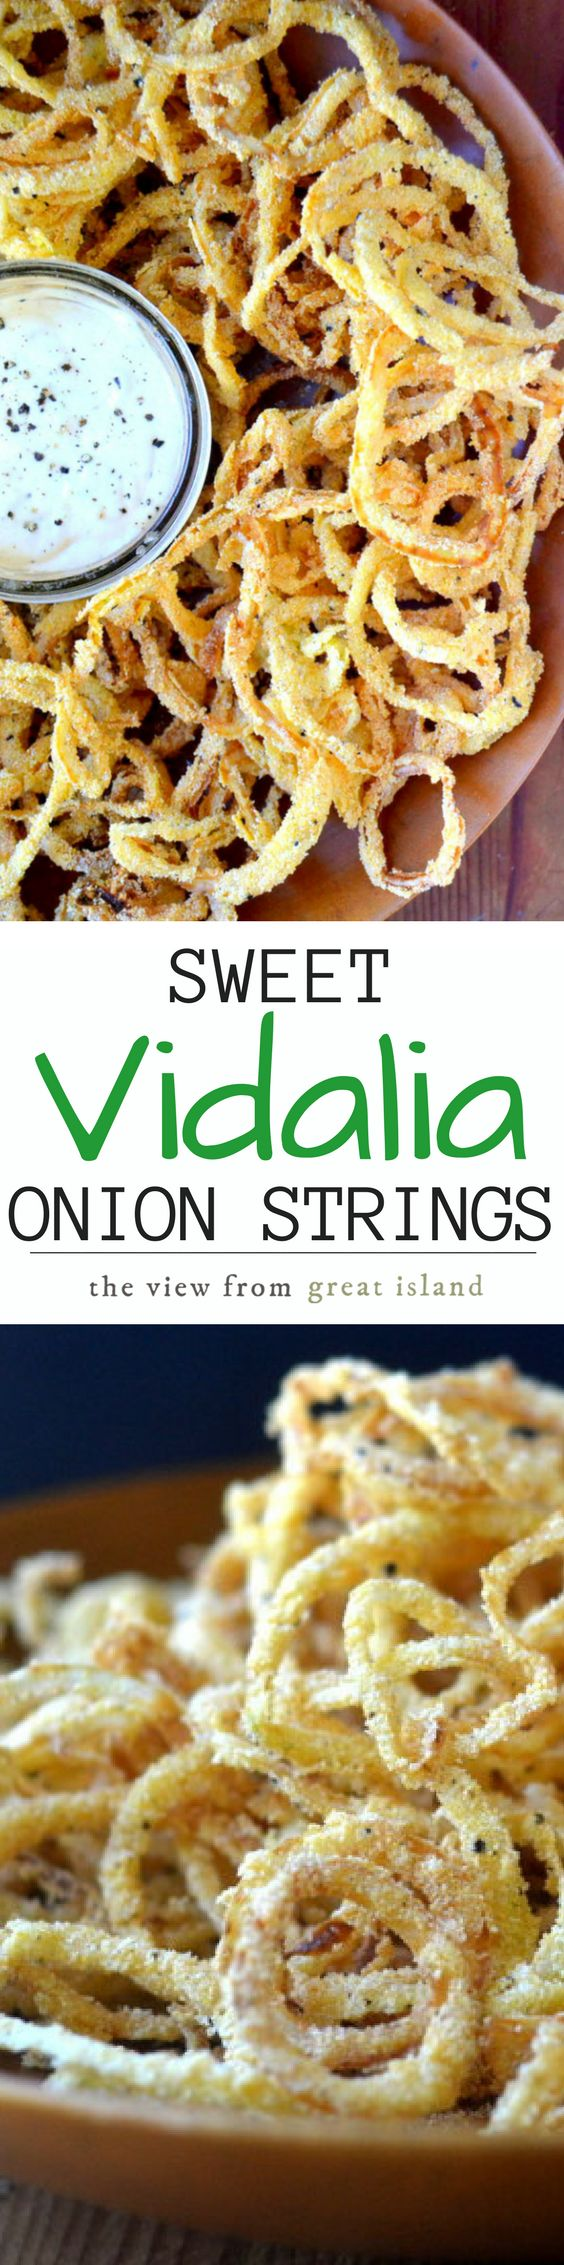 how to make onion strings